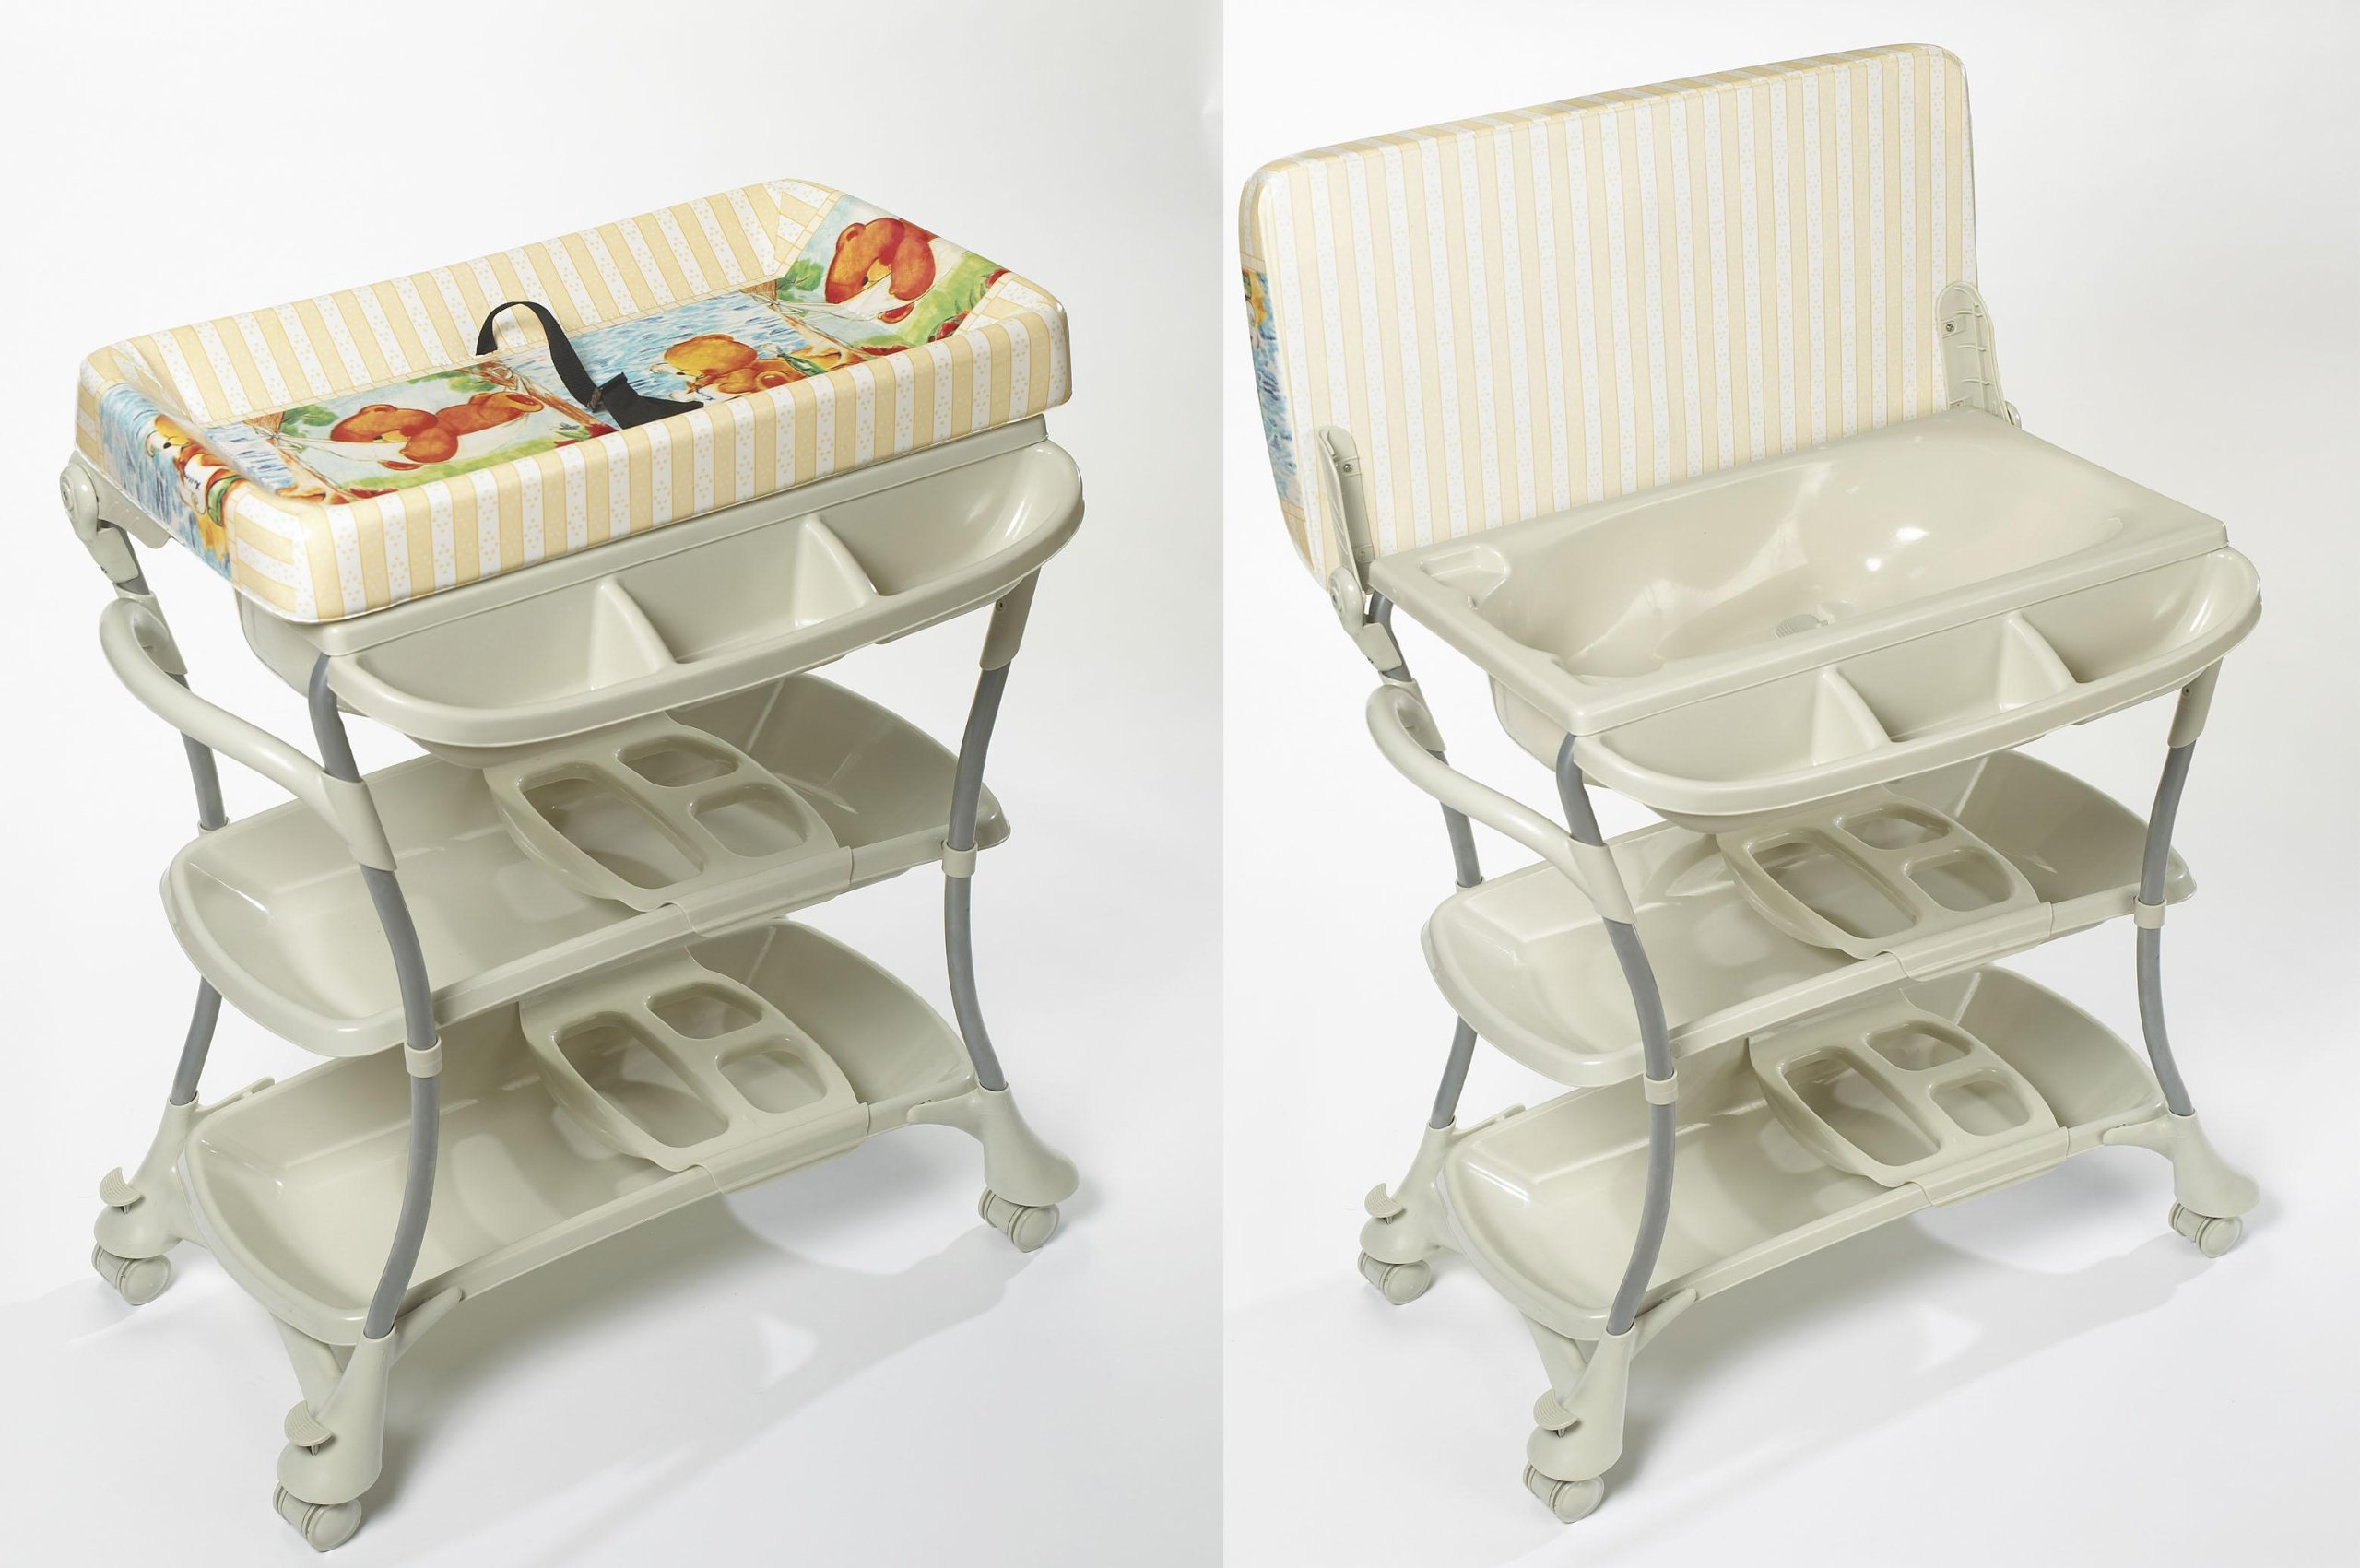 Primo Euro Spa Baby Bath and Changing Table by PRIMO